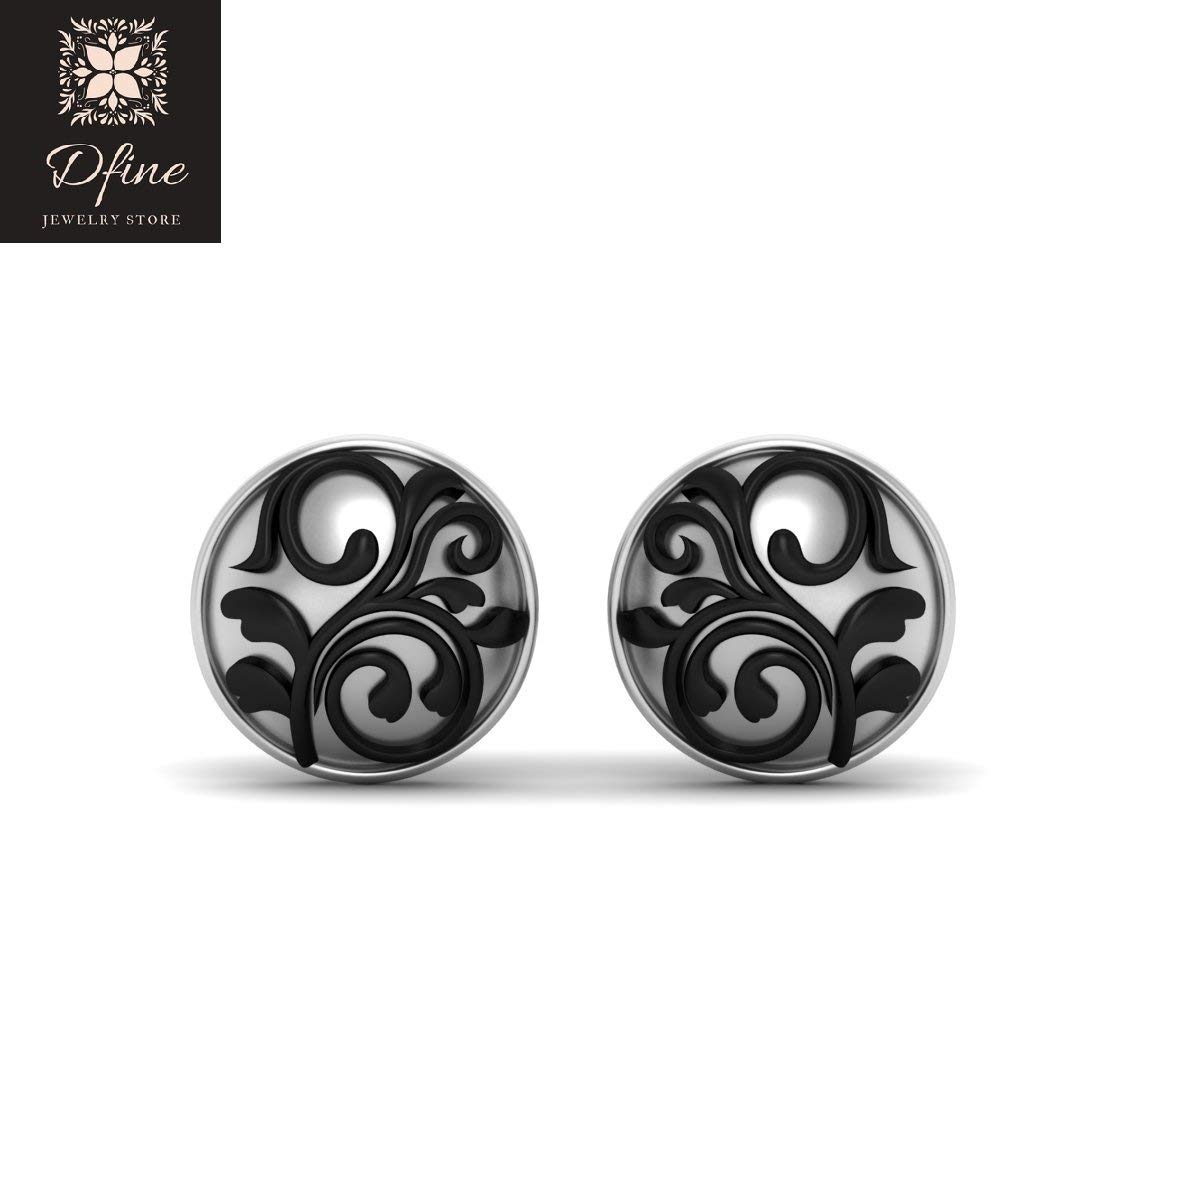 Art Nouveau Cufflinks Two Tone 925 Sterling Silver Wedding Accessories Gift